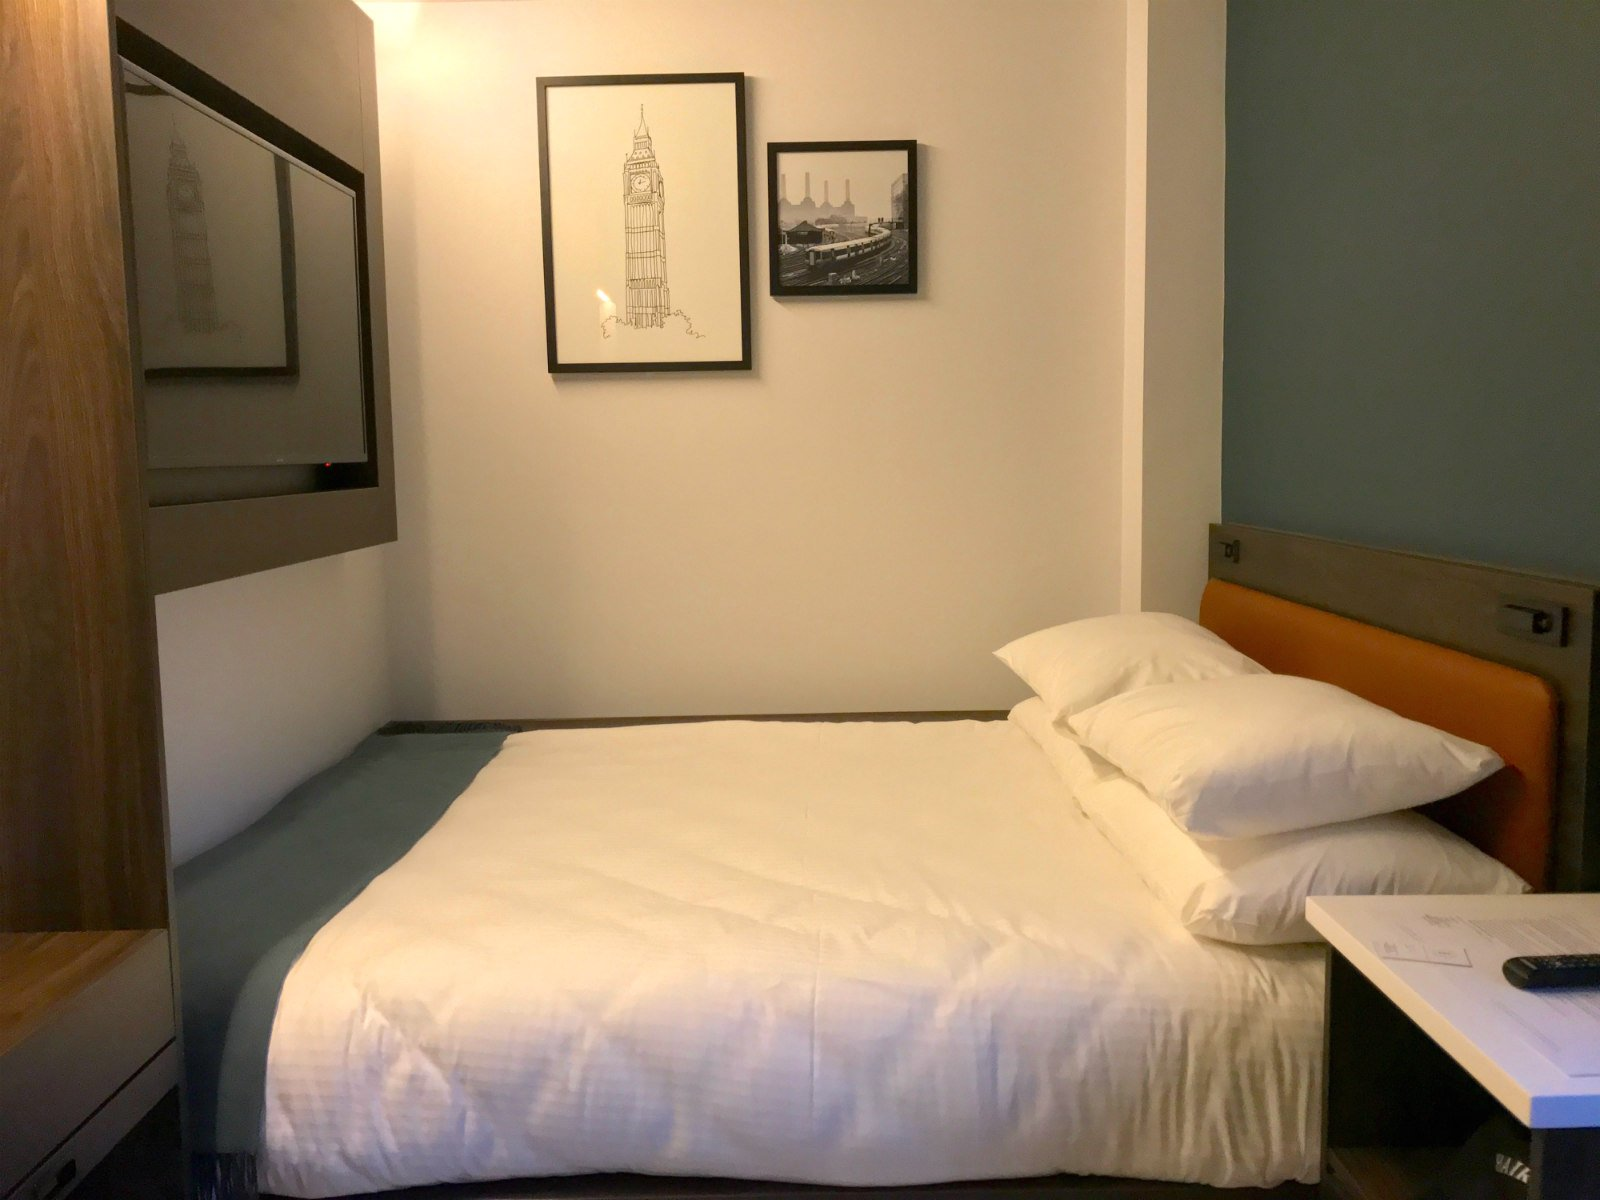 East London Hotel — a modern hotel in the hippest part of town 1